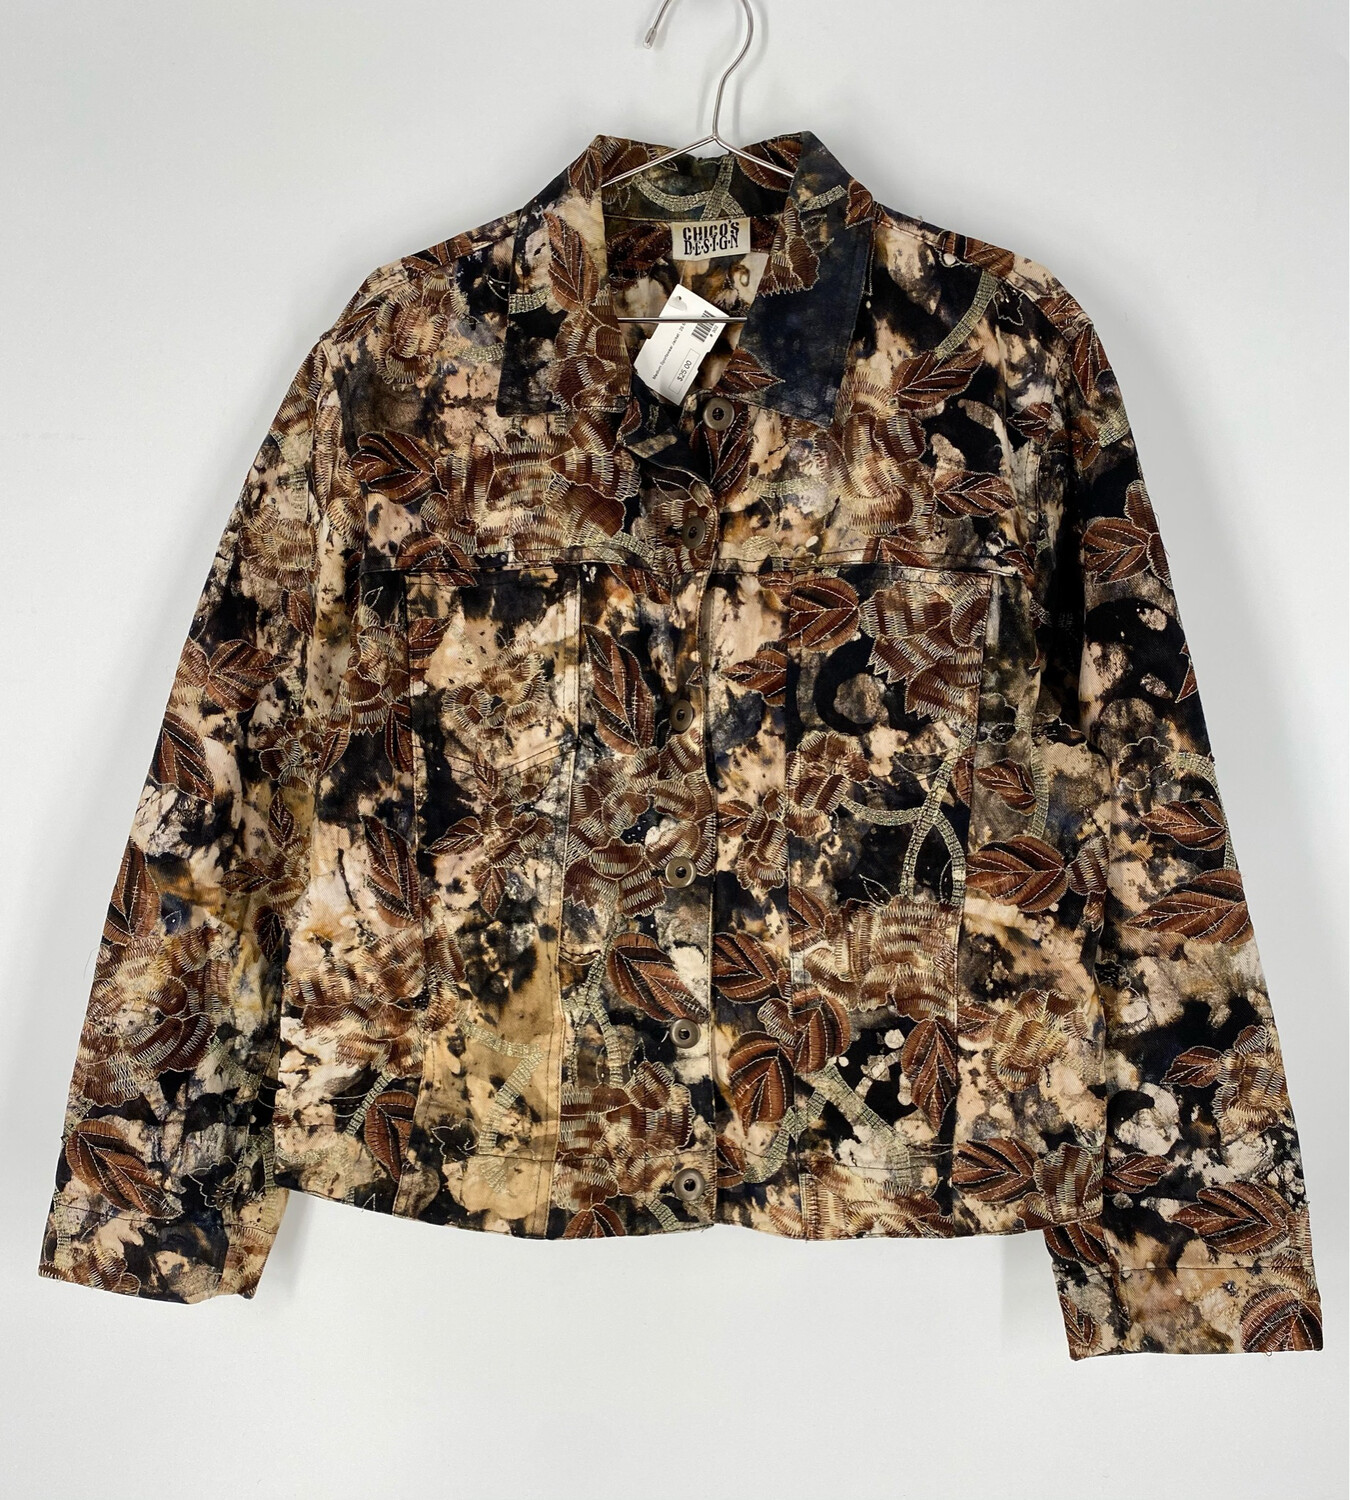 Chico's Design Brown And Black Tie-dye Embroidered Jacket Size M